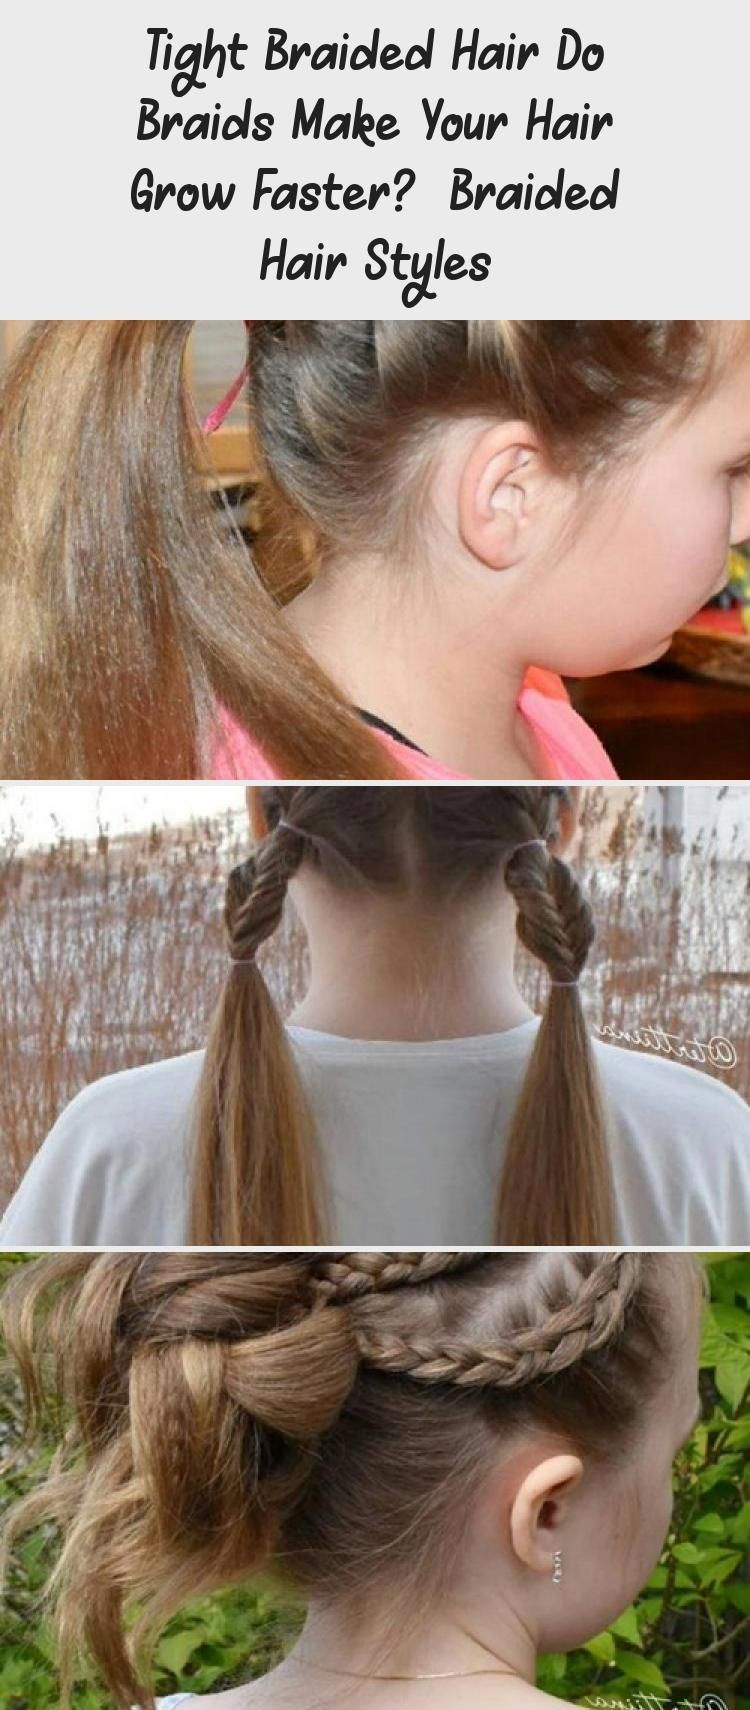 Tight Braided Hair Do Braids Make Your Hair Grow Faster Braided